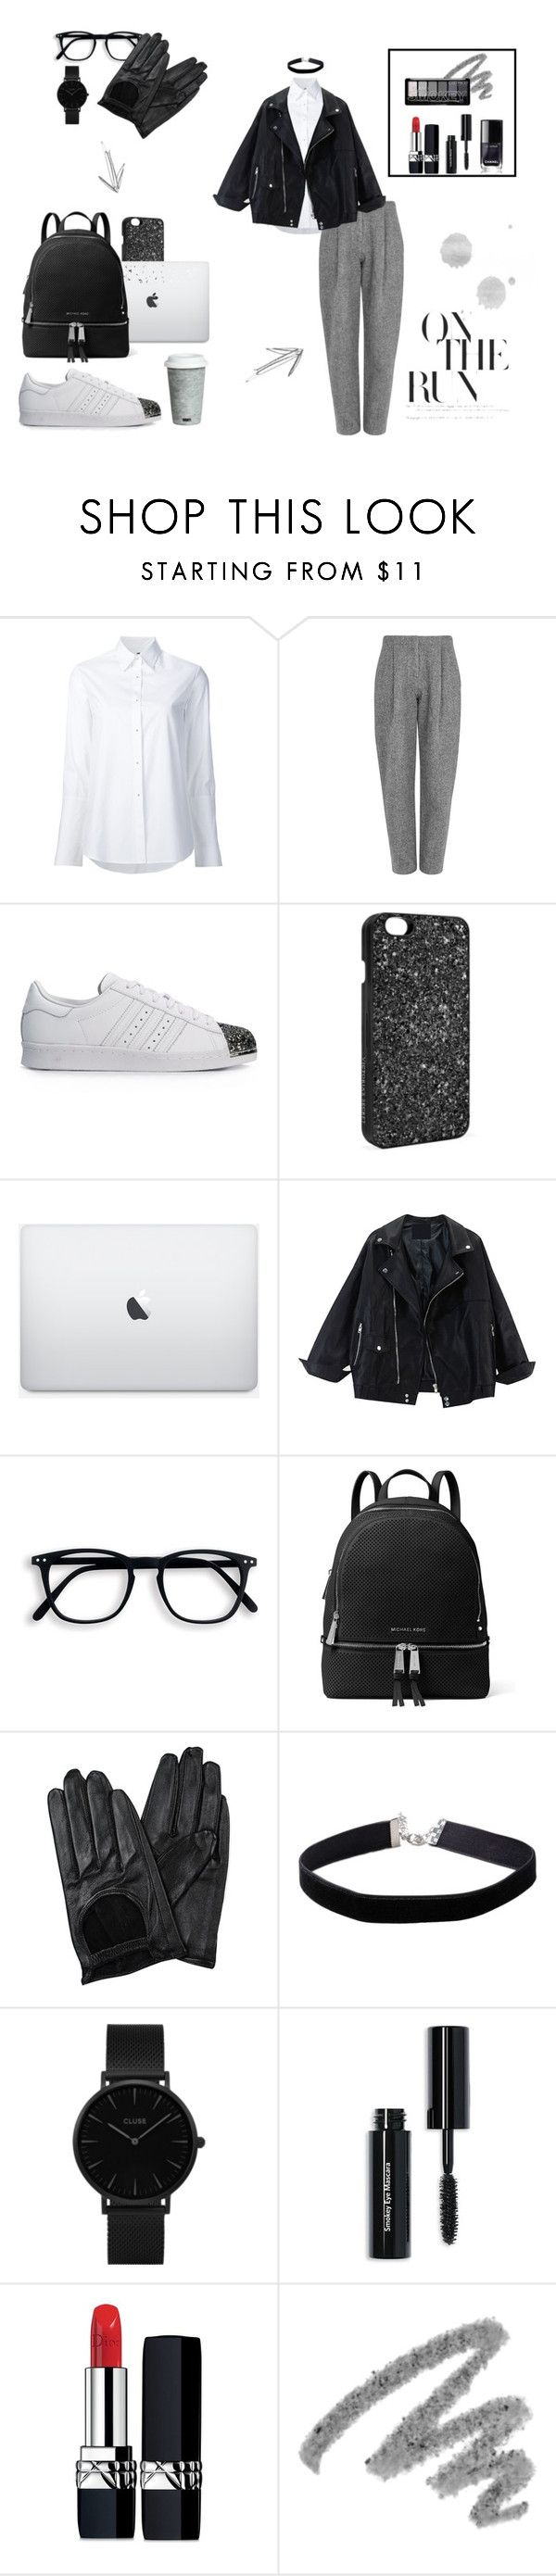 """Black and Grey"" by smaranda-leorda on Polyvore featuring Misha Nonoo, Acne Studios, adidas Originals, Victoria's Secret, MICHAEL Michael Kors, Chicnova Fashion, Miss Selfridge, CLUSE, Bobbi Brown Cosmetics and Christian Dior"